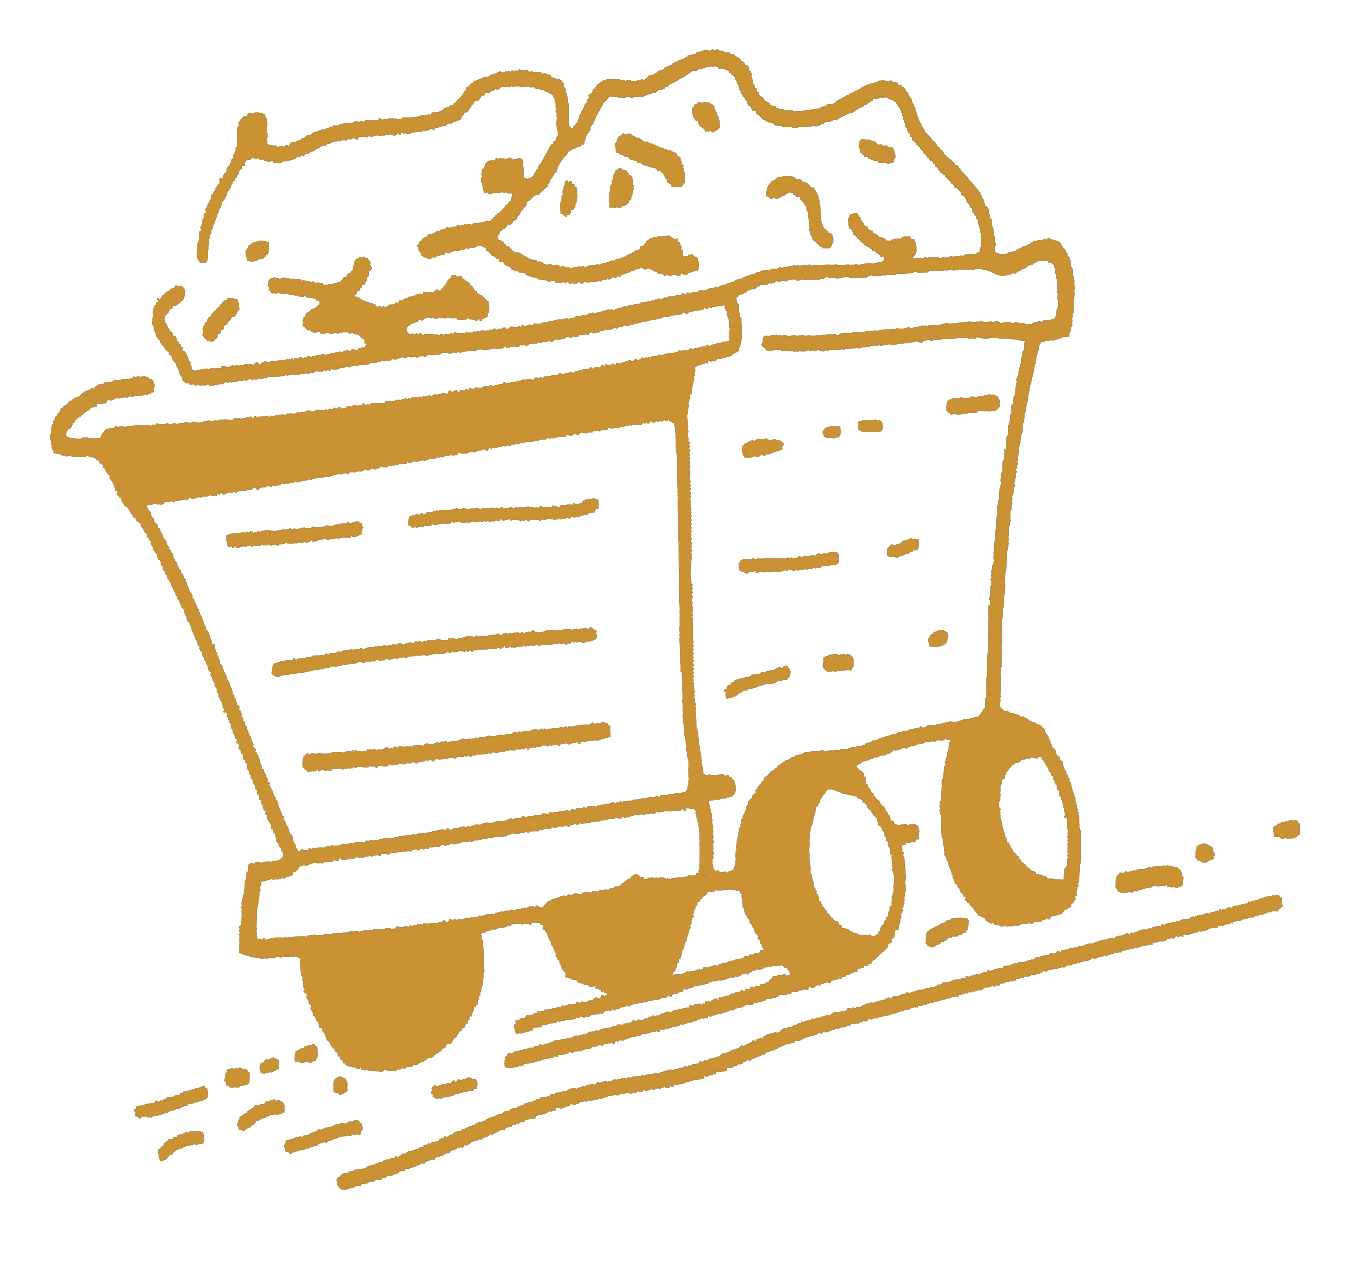 Coal clipart coal cart. Welcome to the lignite